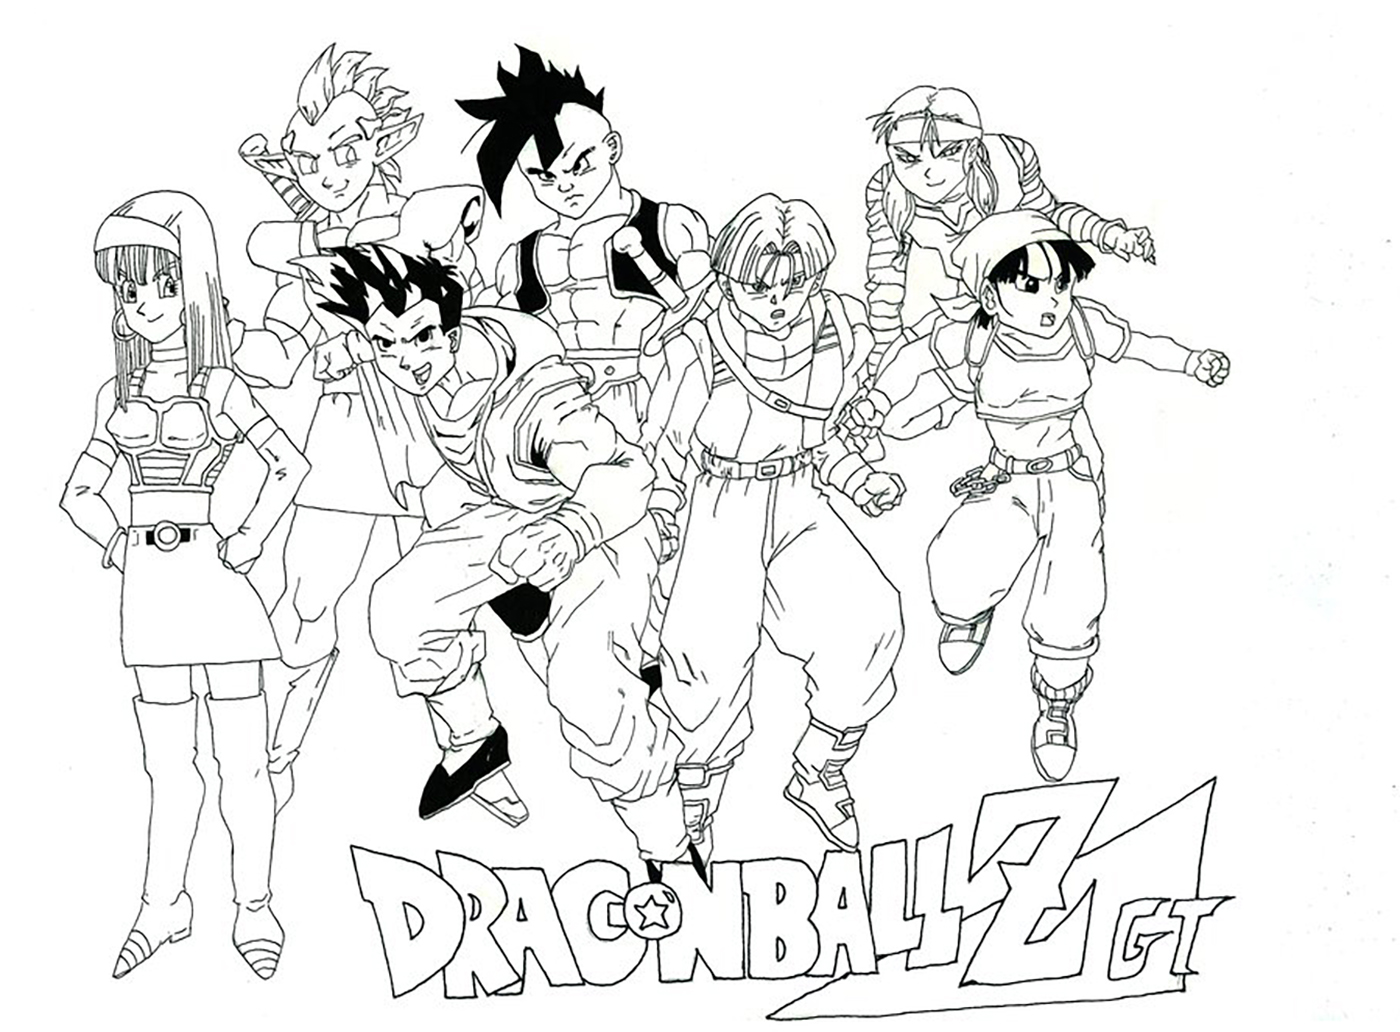 Facile dragon ball gt coloriage dragon ball z coloriages pour enfants - Dessin dragon ball z facile ...